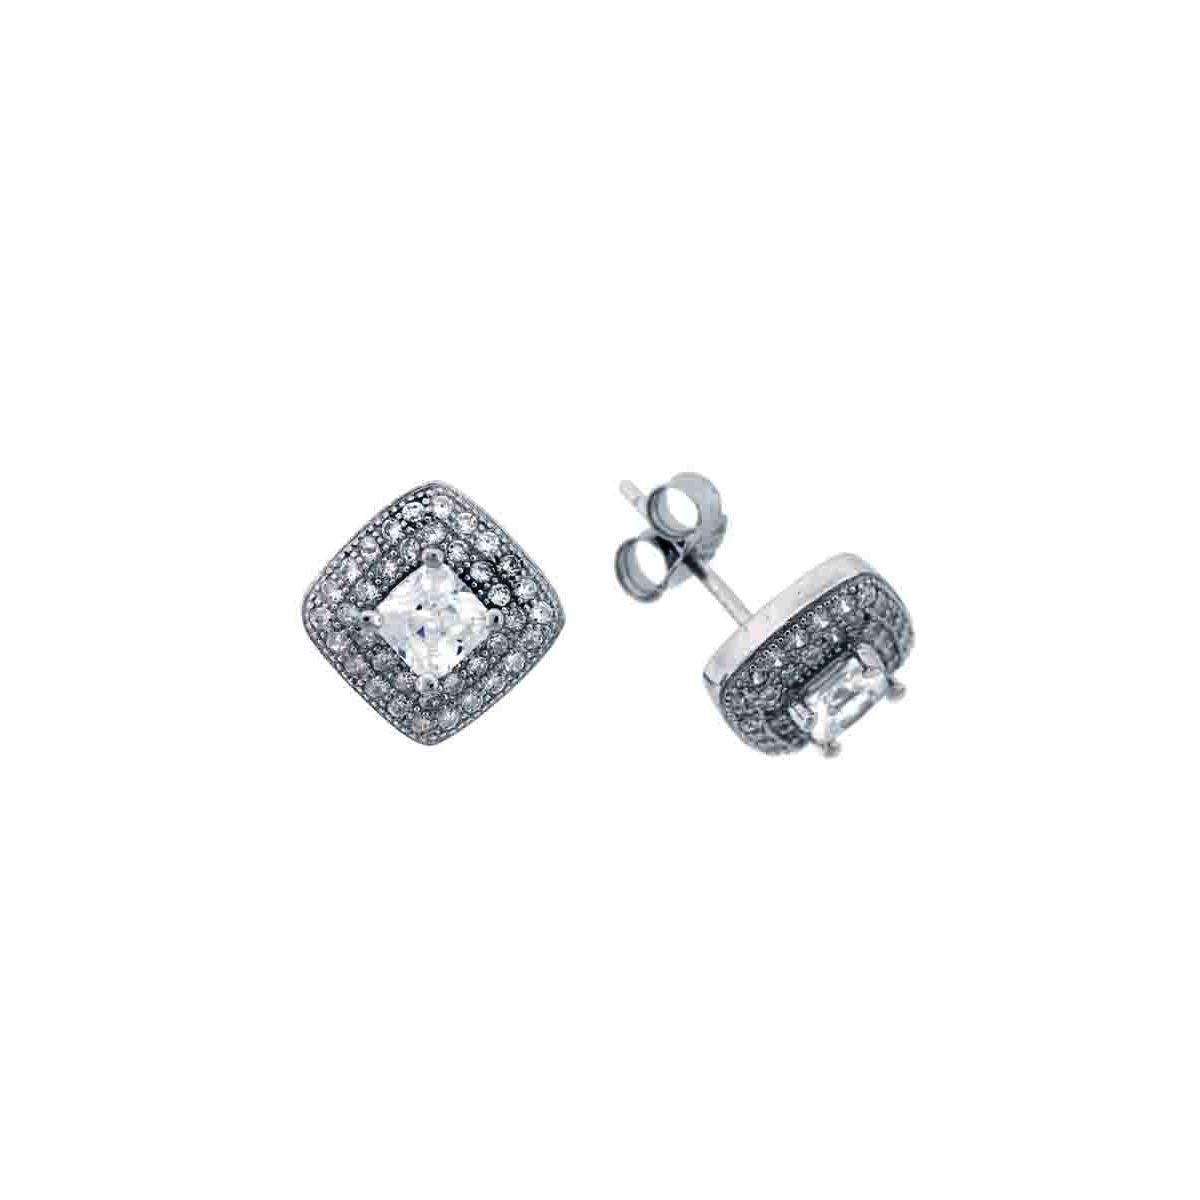 925 - Sterling - Square 4*4 Emerald Cut Center CZ Stud Earrings